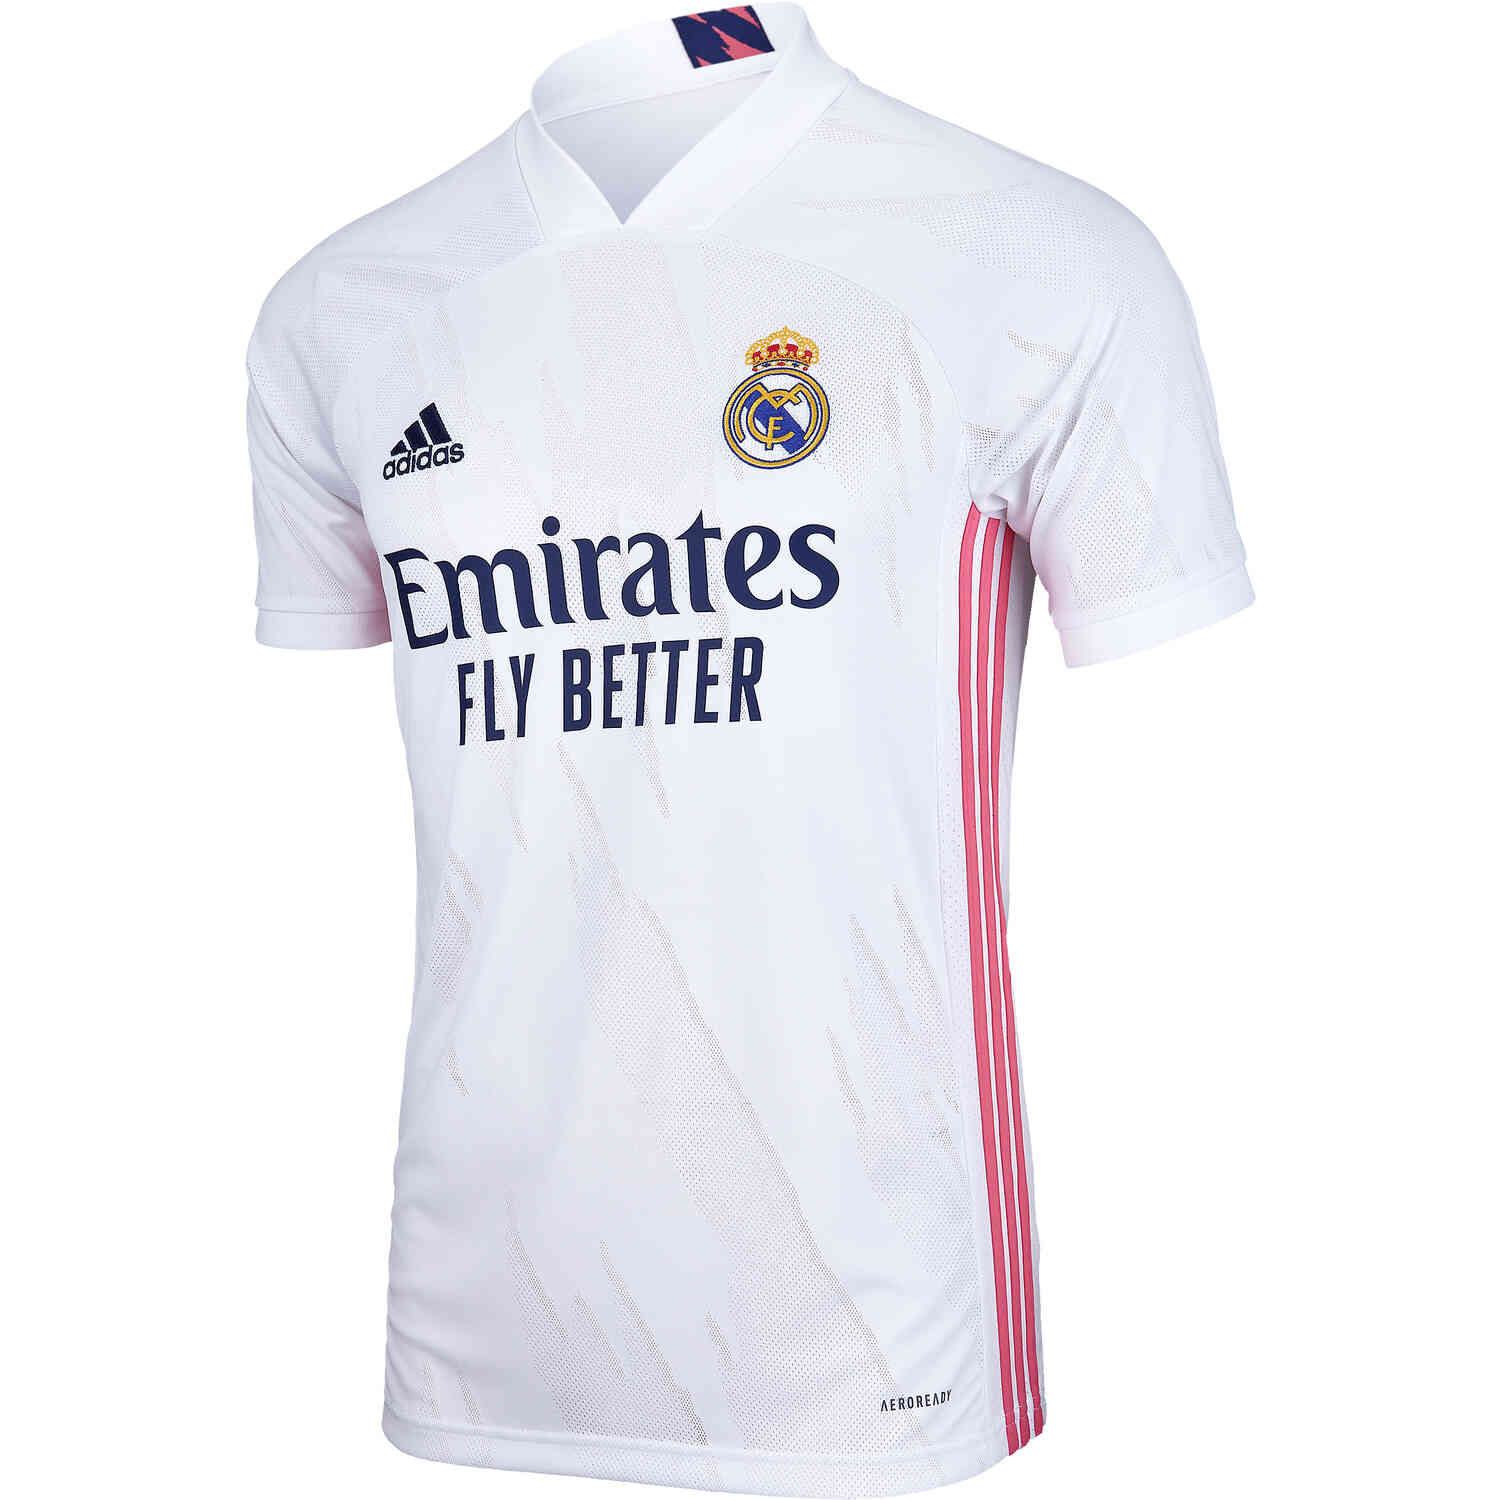 2020/21 Kids adidas Real Madrid Home Jersey - Soccer Master